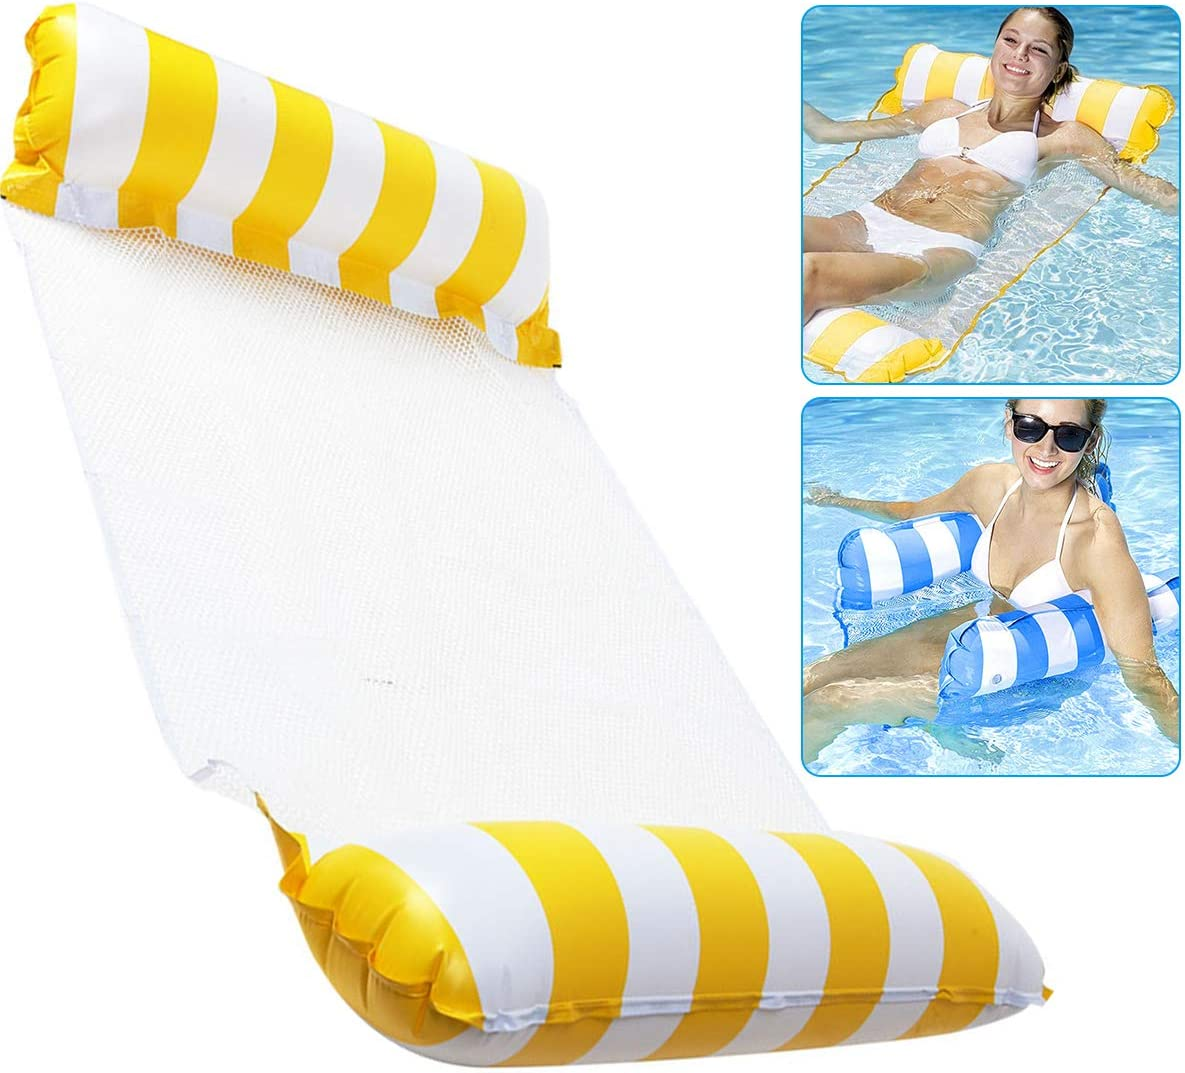 4-in-1Portable Multi-Purpose Pool Hammock Pool Chair Lightweight Floating Compact Swimming Pool Mat for Adults And Kids OFOCASE Hammock Inflatable Pool Float,Inflatable Hammock